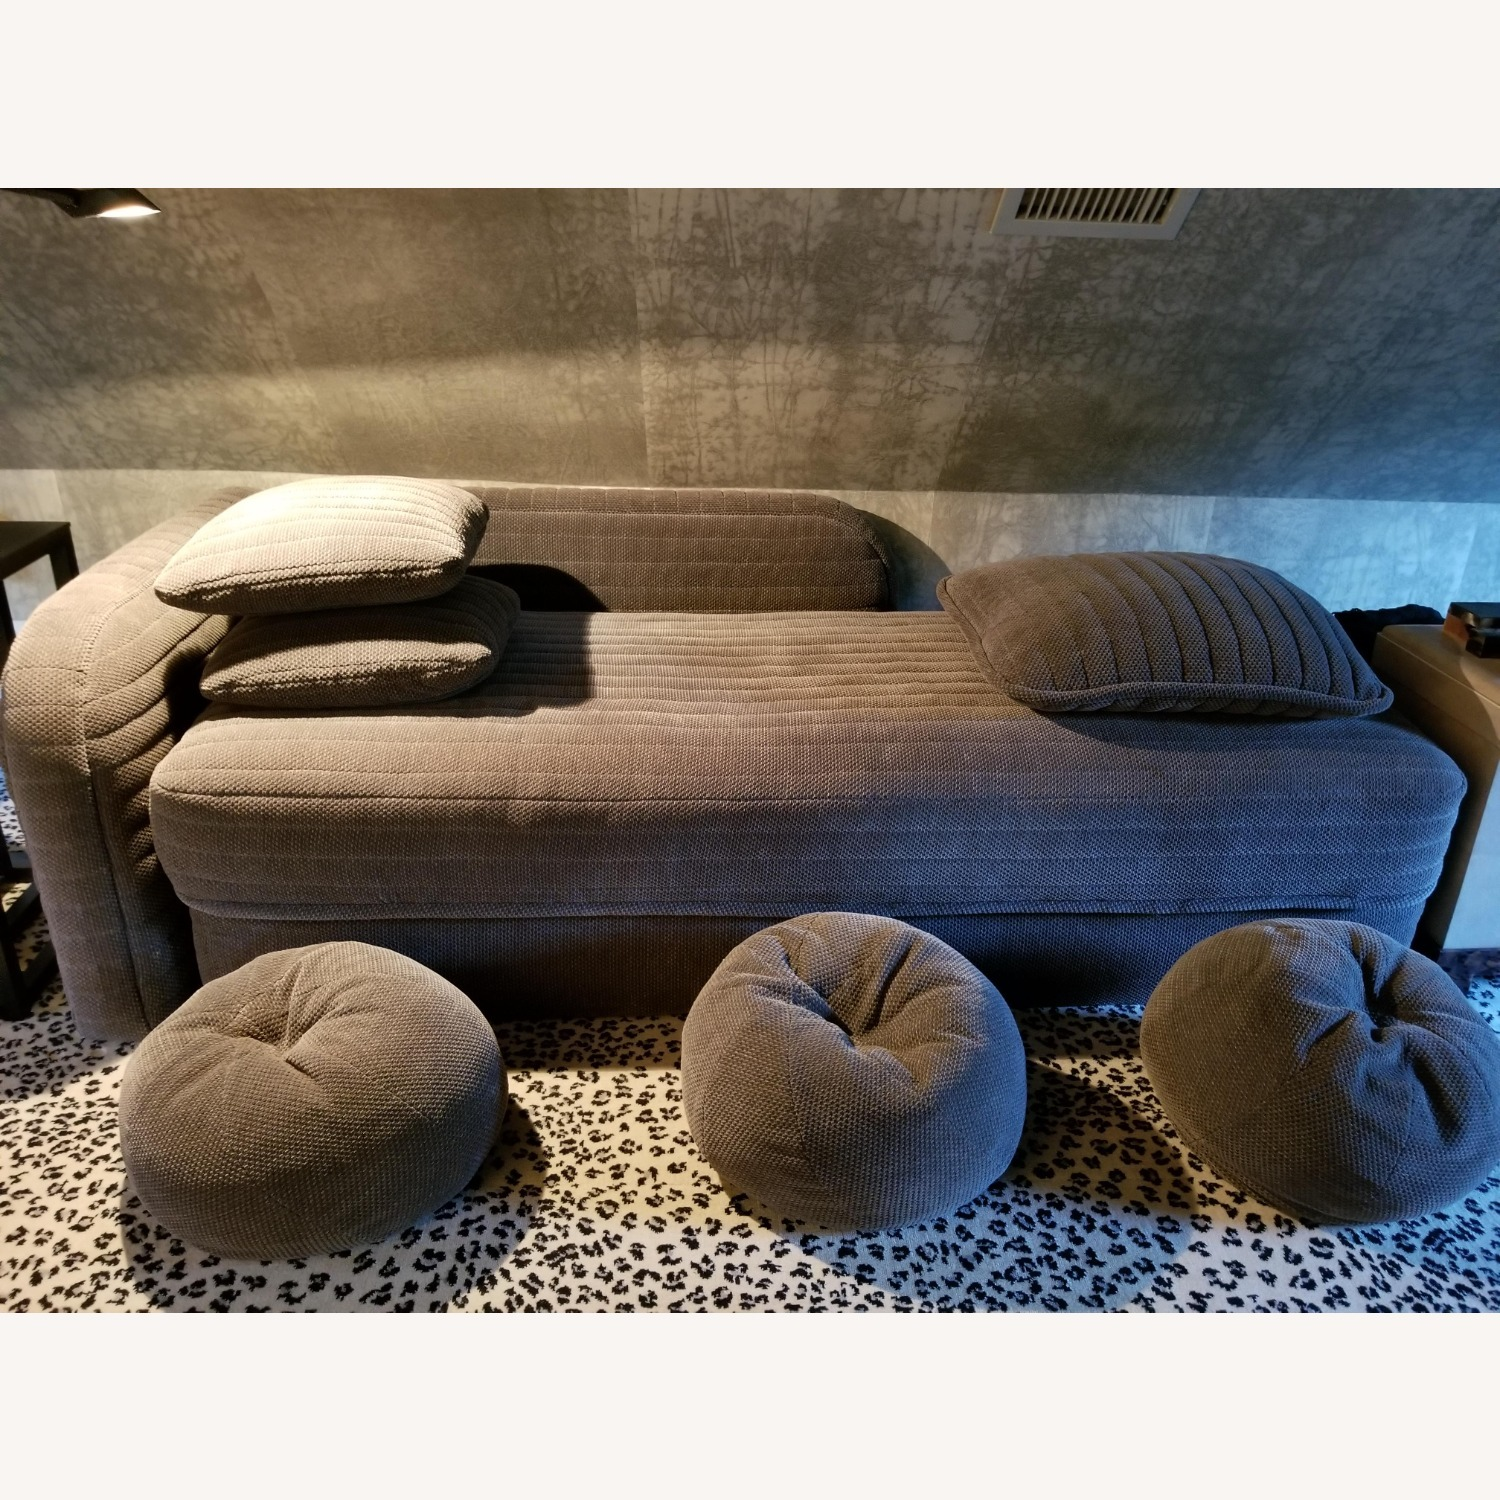 Donghia Daybed W/ Pillows - Queen Fold Out Bed - image-4